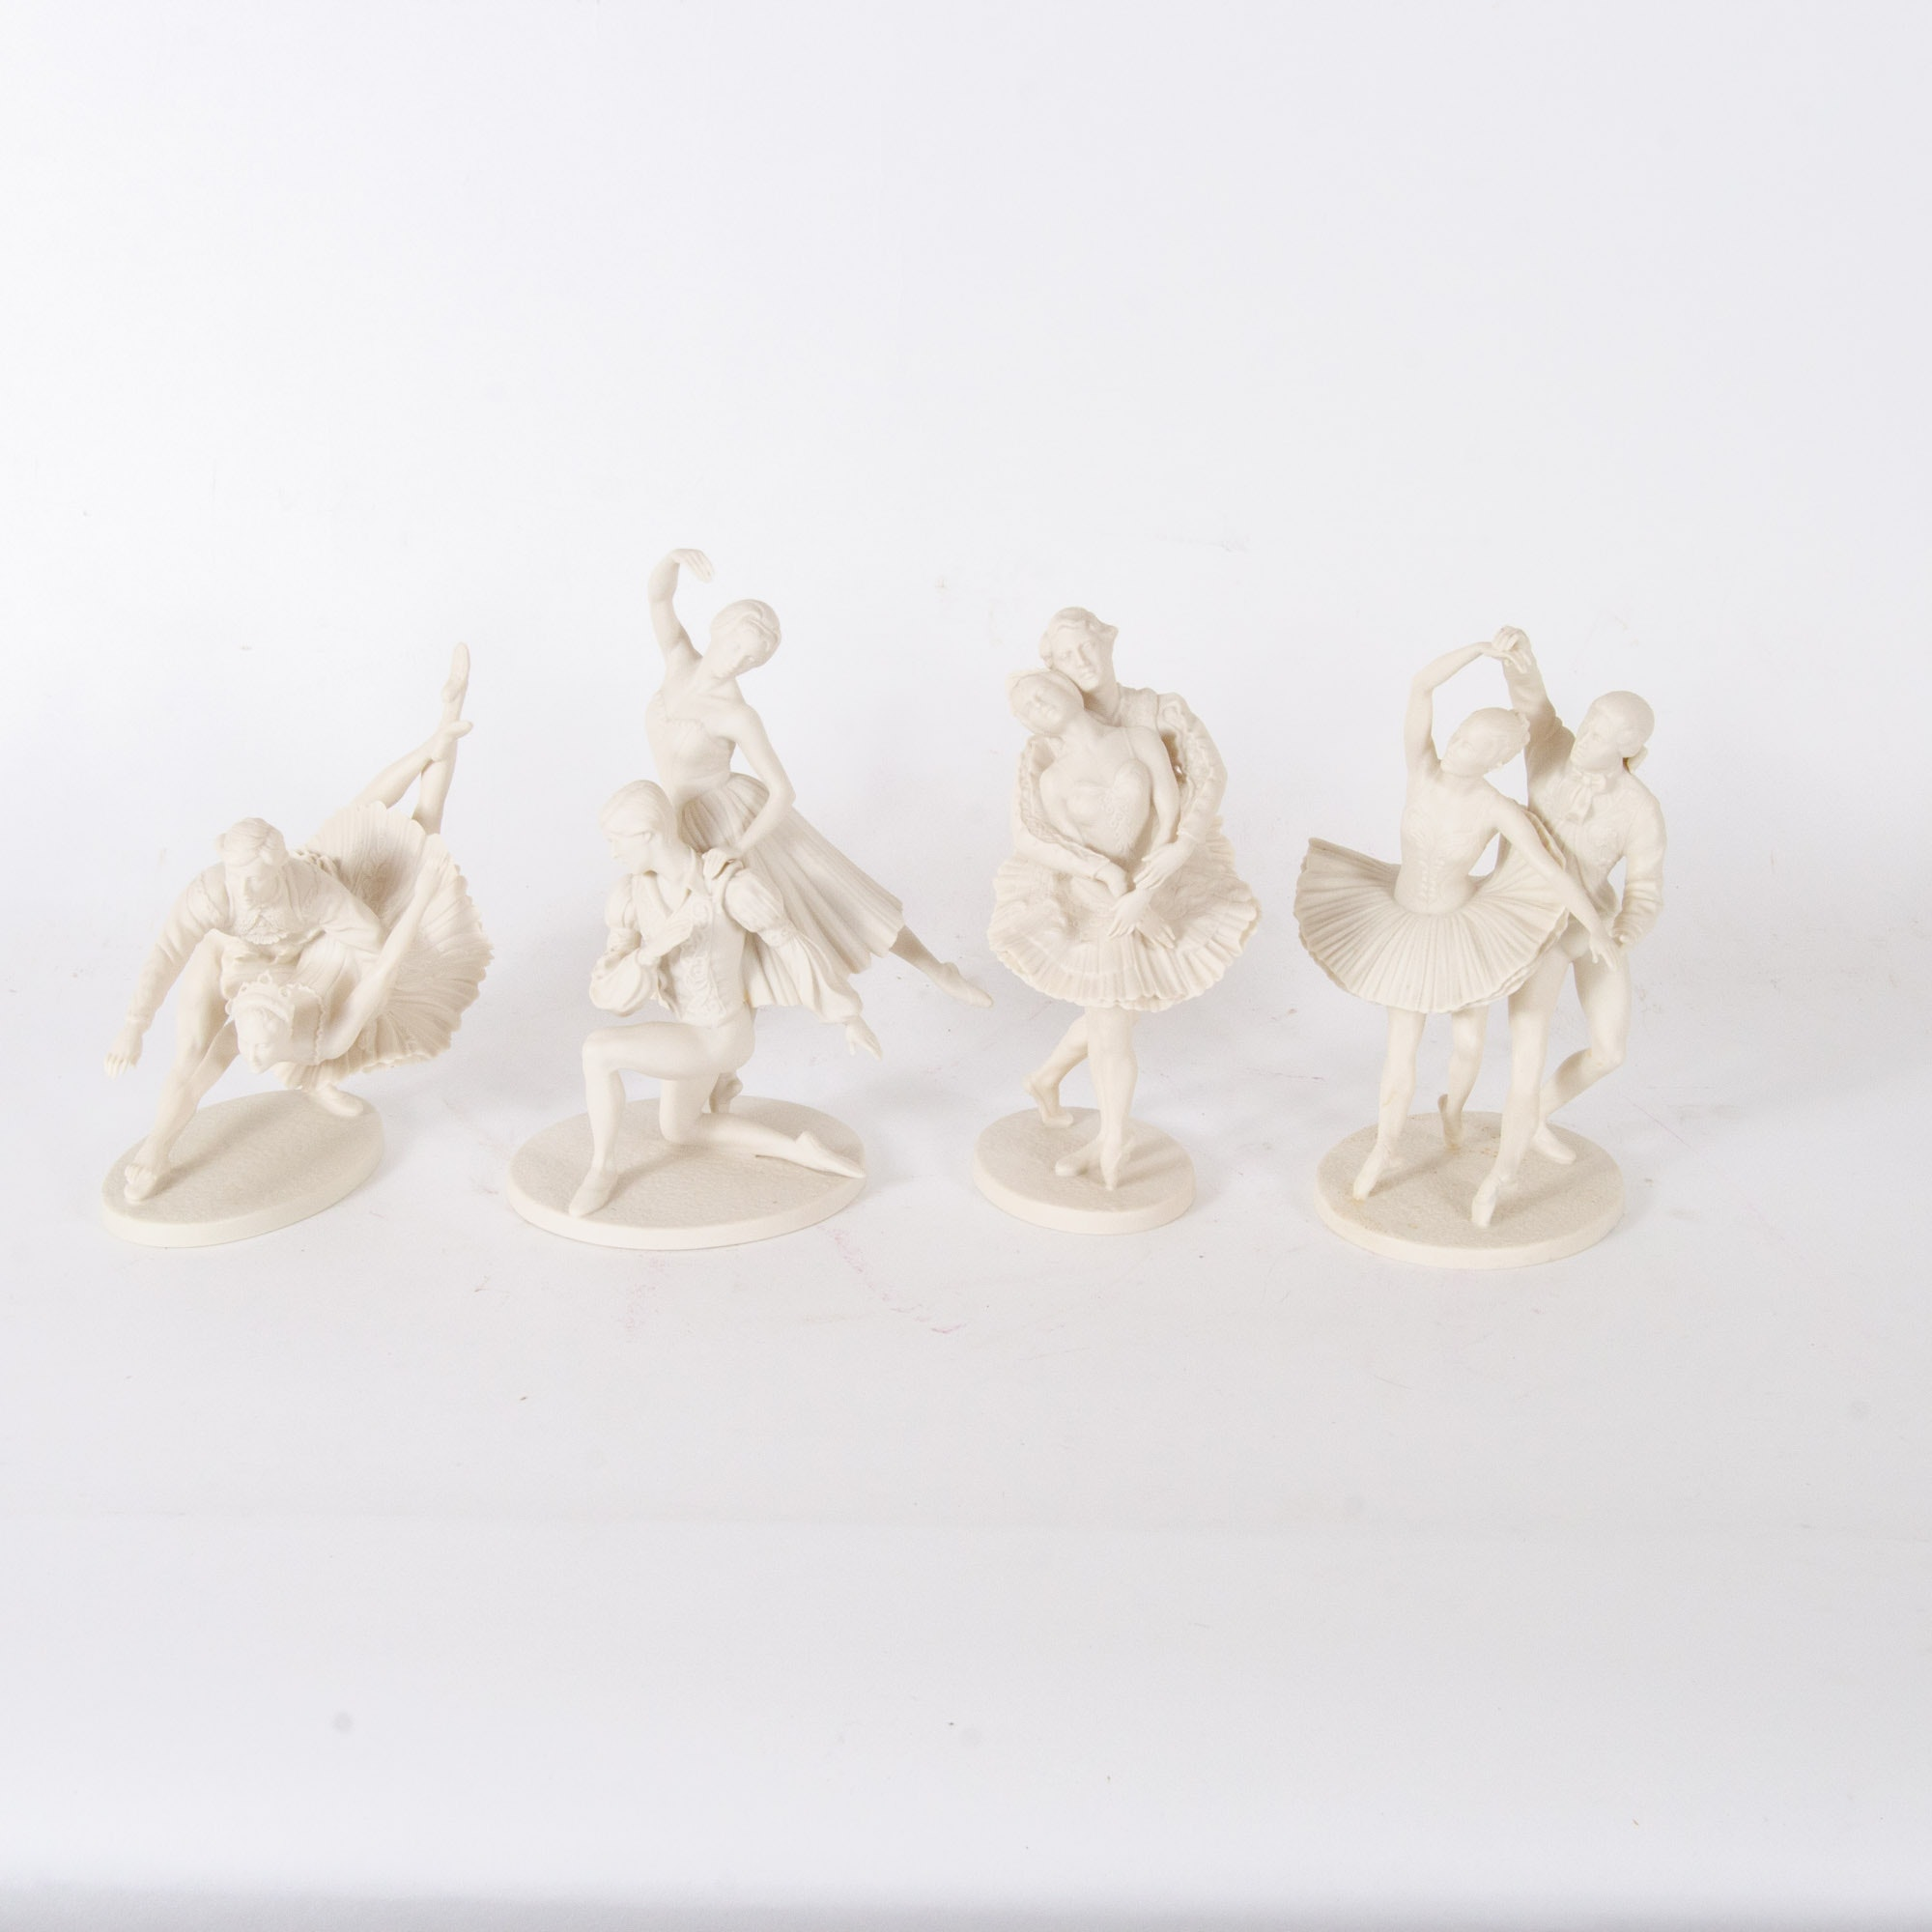 Limited Edition Franklin Mint Bisque Porcelain Ballet Figurines, Circa 1970s